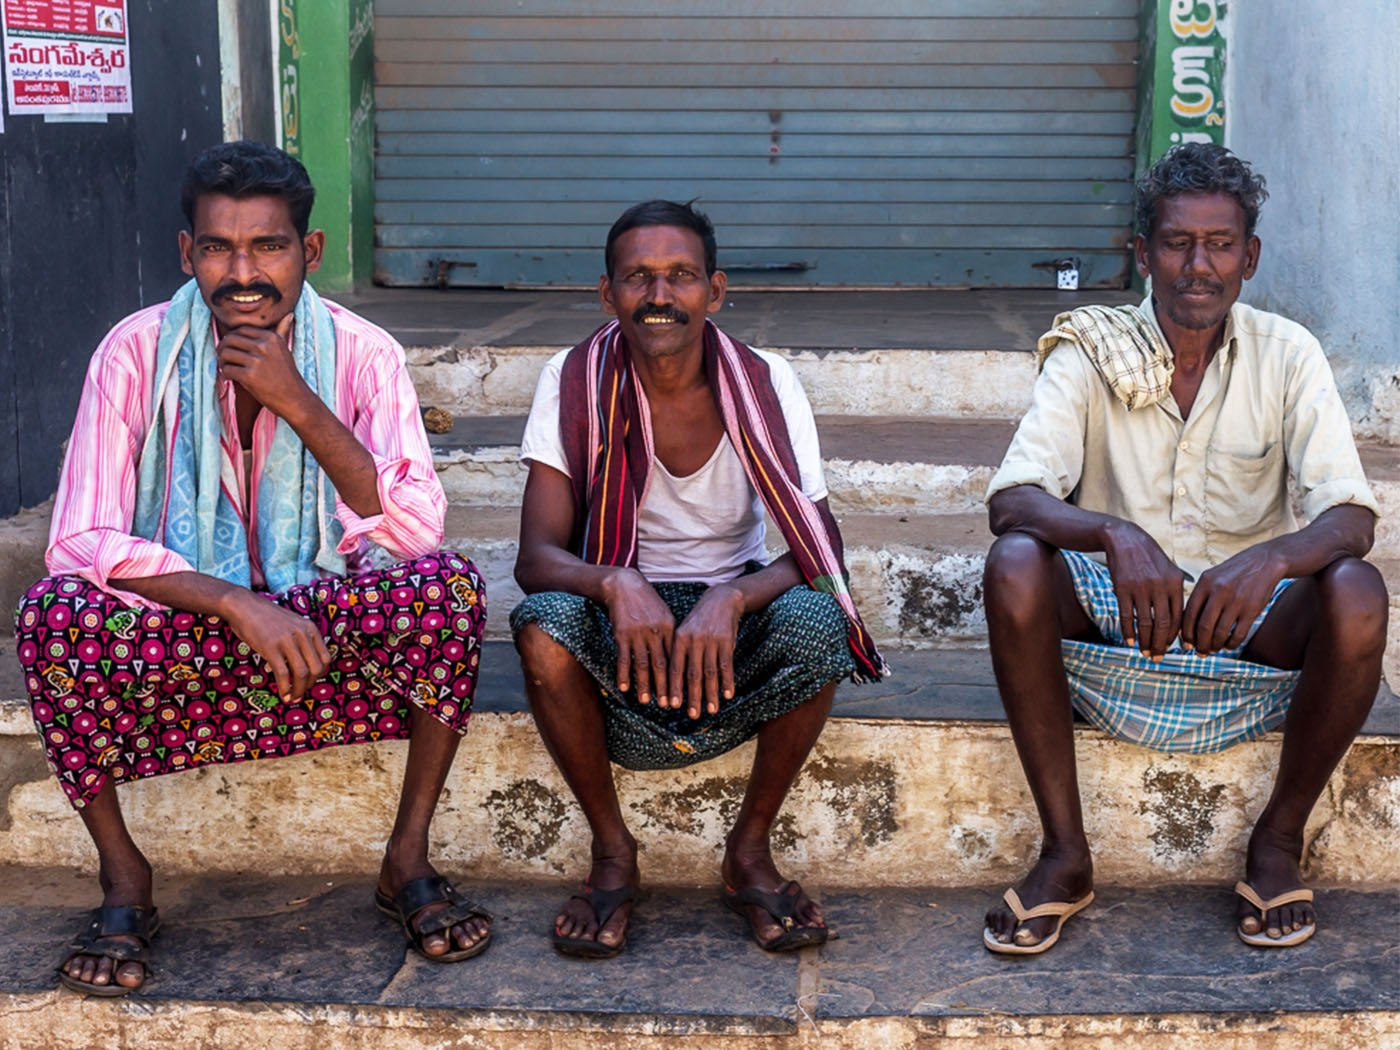 Farmers sitting in front of local shop